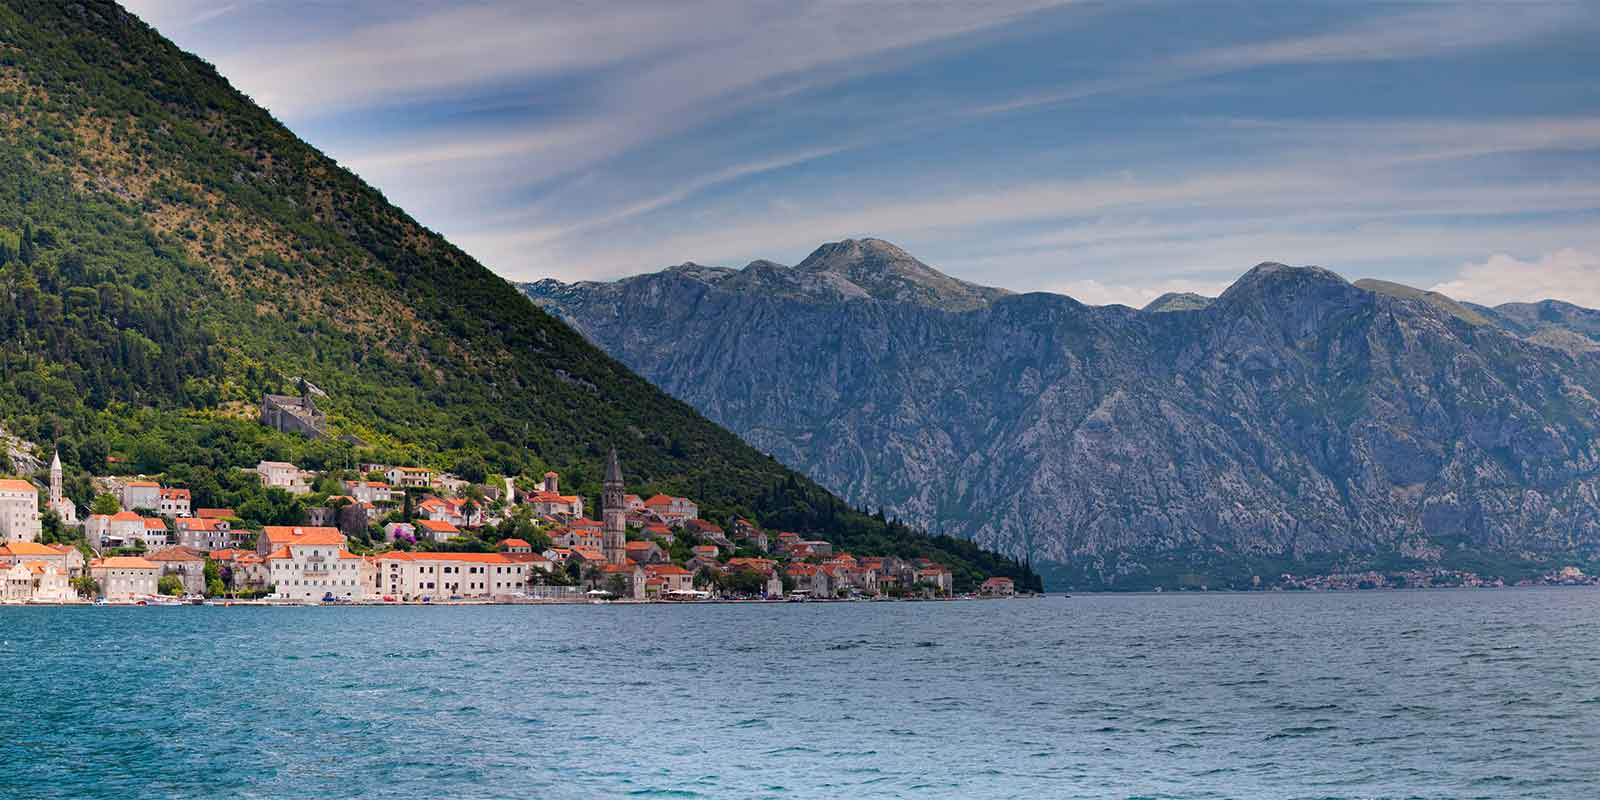 Bay of Kotor and Island of St George in Montenegro